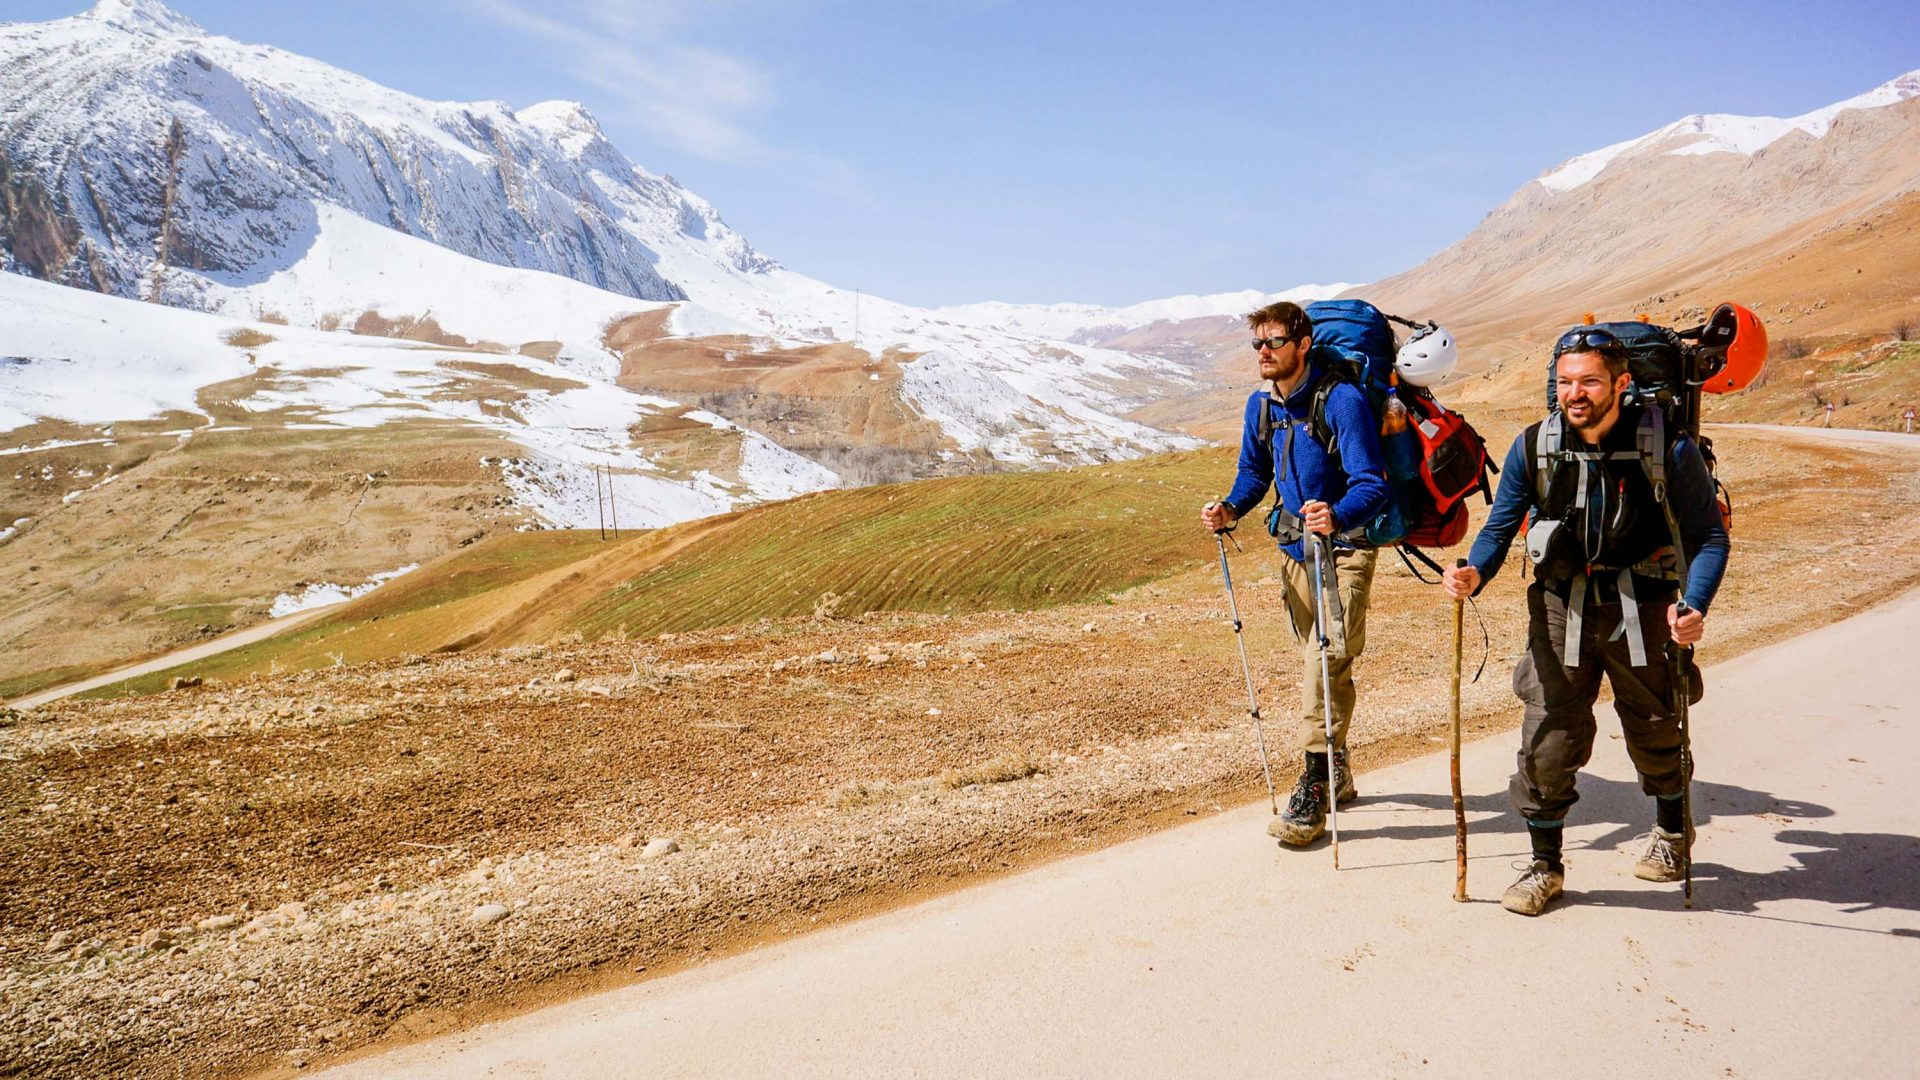 Leon McCarron and his travel companion Sean hike past melting snow fields along Karun River in Iran..